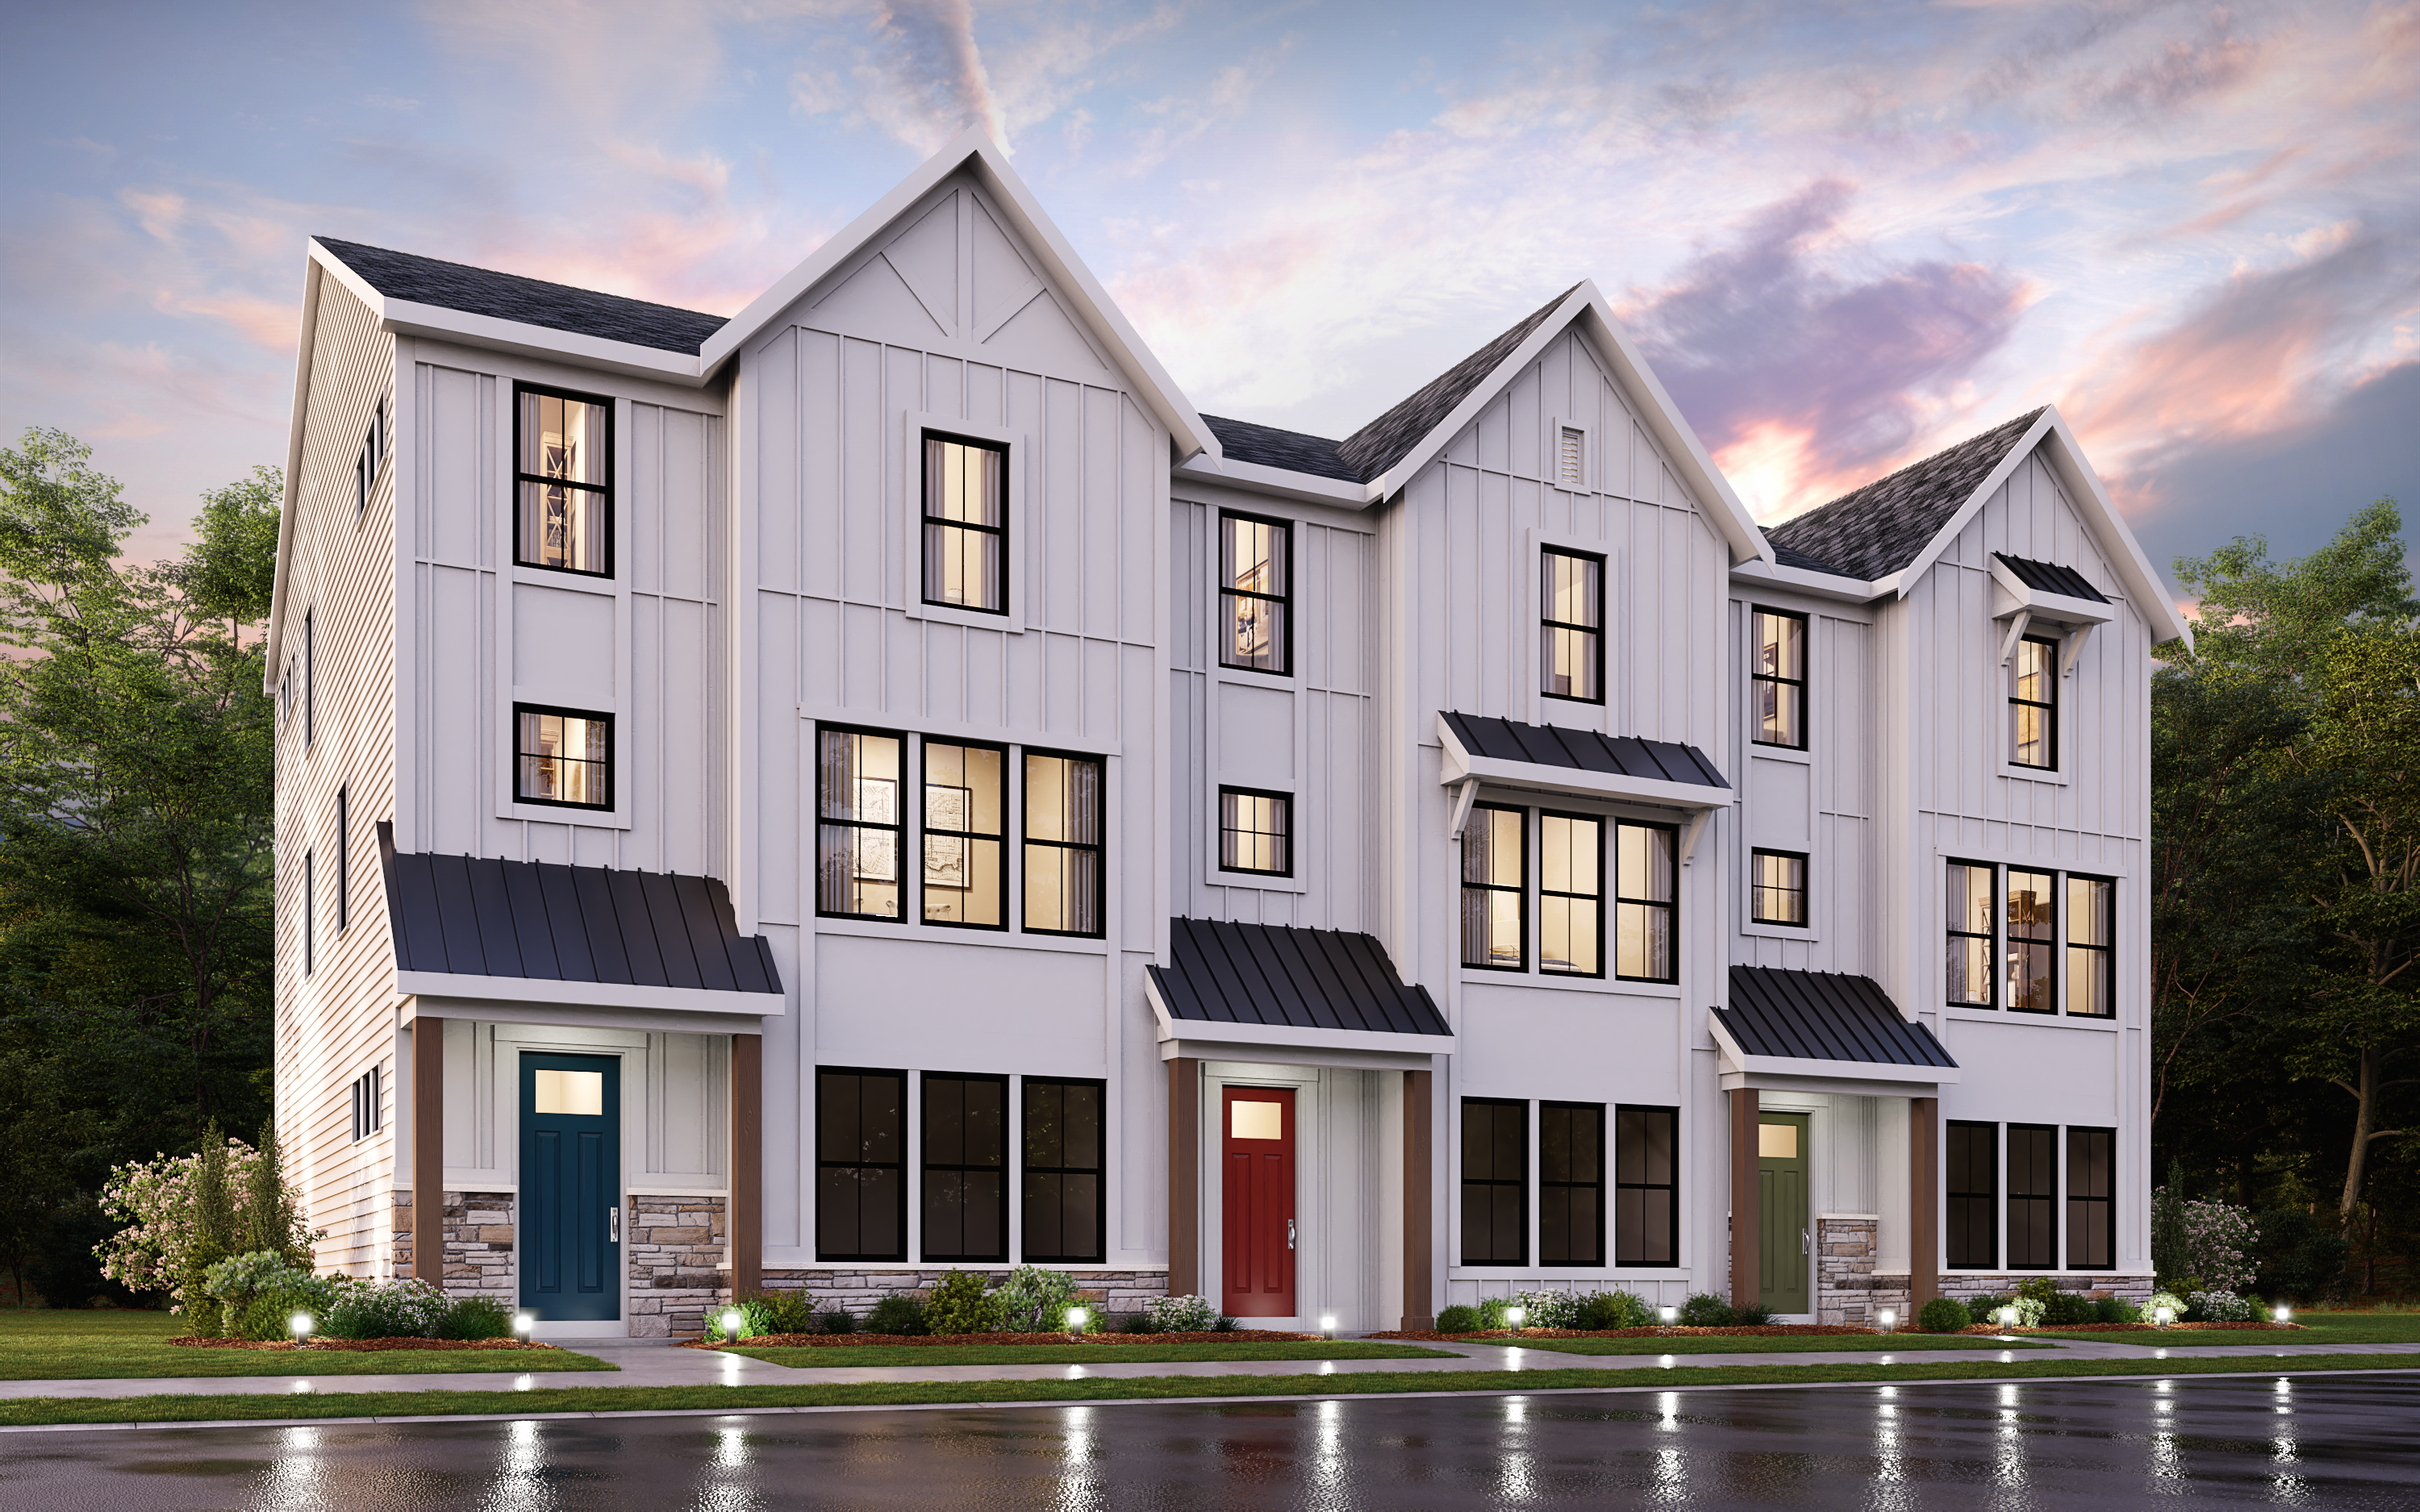 3-Story Town Homes Located At Gateway Heights in Richmond Heights, Missouri